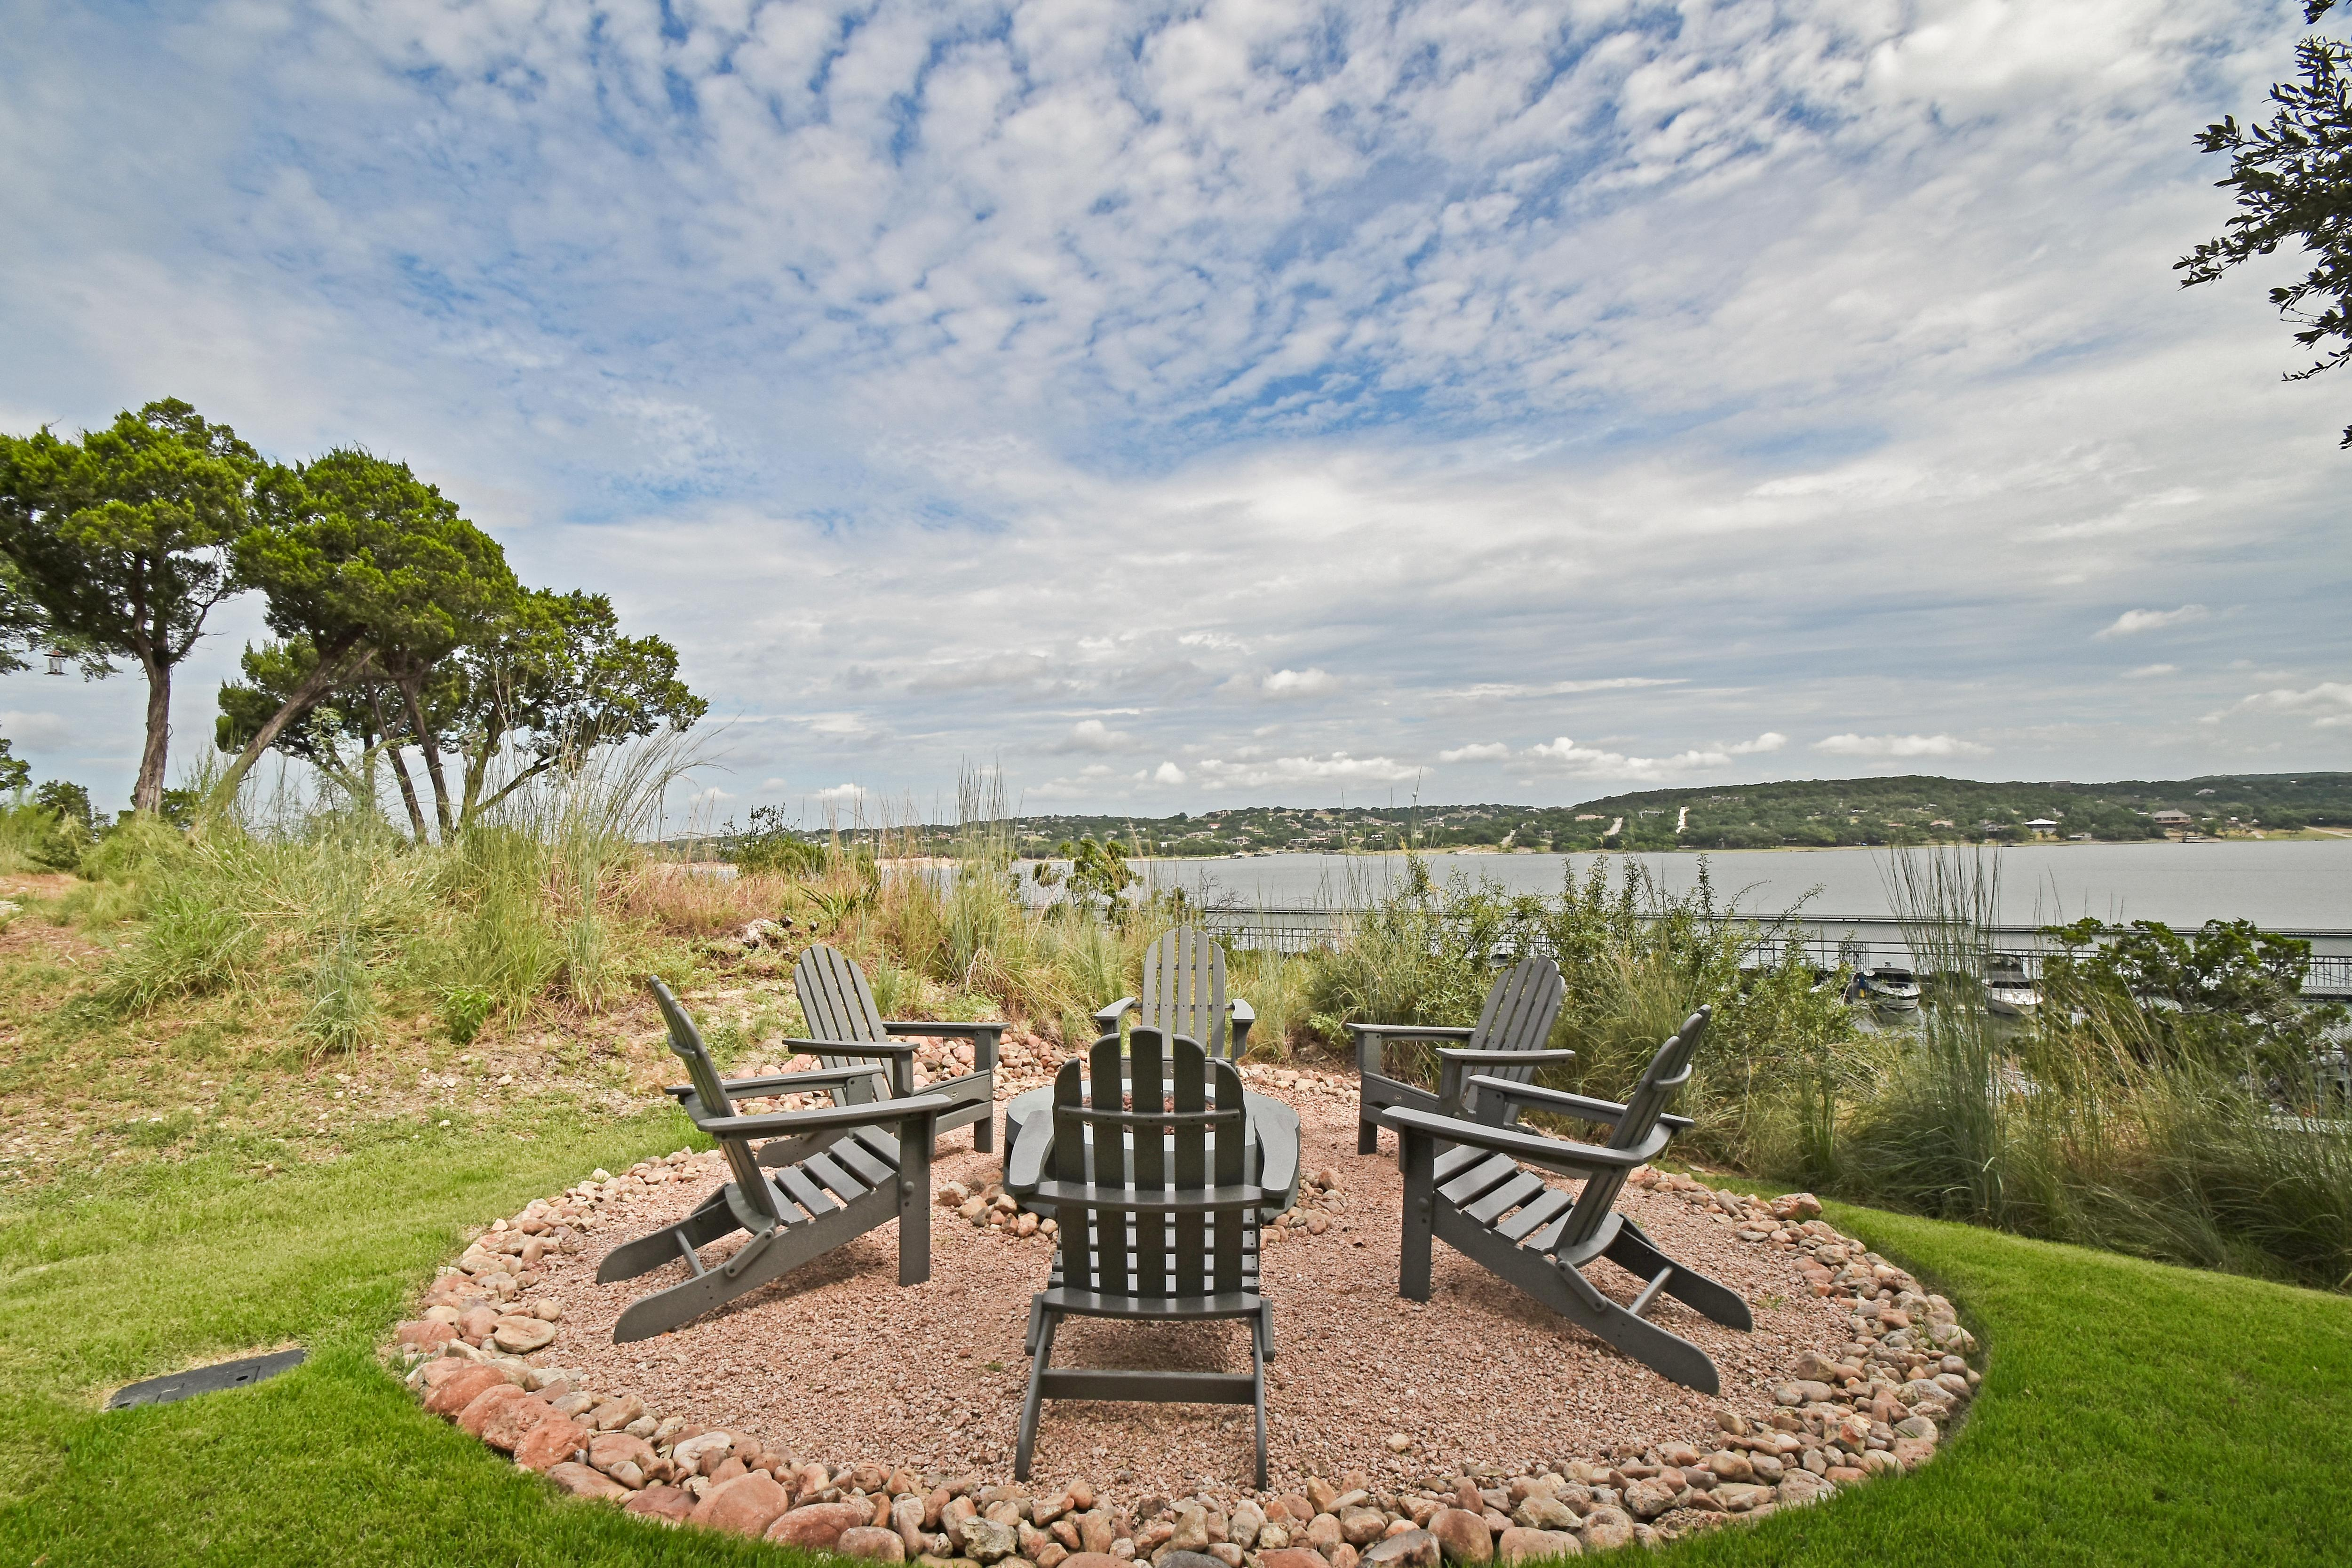 Welcome to Lake Travis! Adirondack chairs face views of The Reserve's marina and lake frontage.